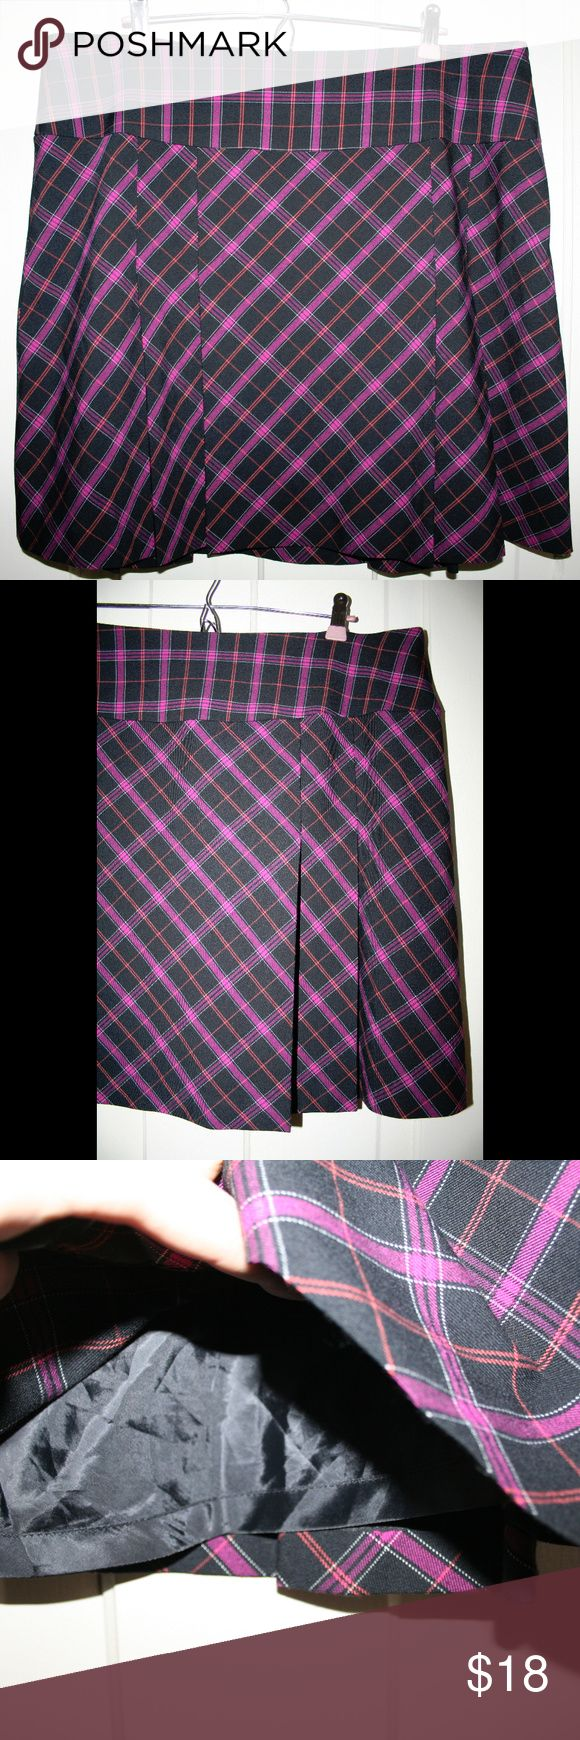 """Pleated plaid schoolgirl skirt Gently pre-loved without defects. Some stretch. Like new!  Waist: 39"""" around the top Length: 20""""  #punk #rocker #gothic #skater #sexy #cute #plus size Apostrophe Skirts Mini"""